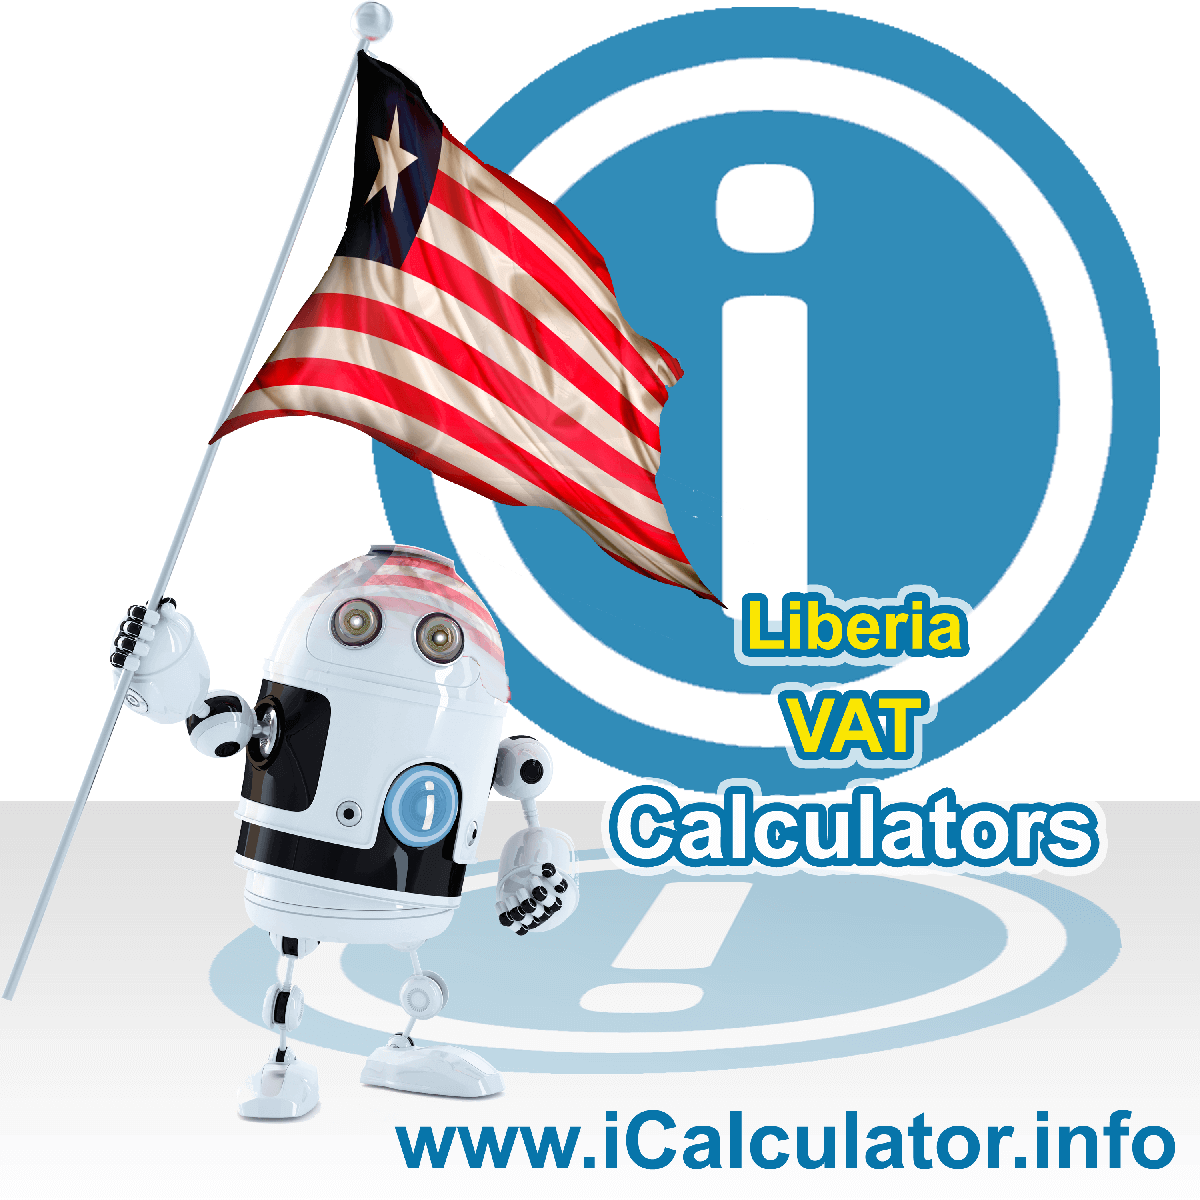 Liberia VAT Calculator. This image shows the Liberia flag and information relating to the VAT formula used for calculating Value Added Tax in Liberia using the Liberia VAT Calculator in 2020